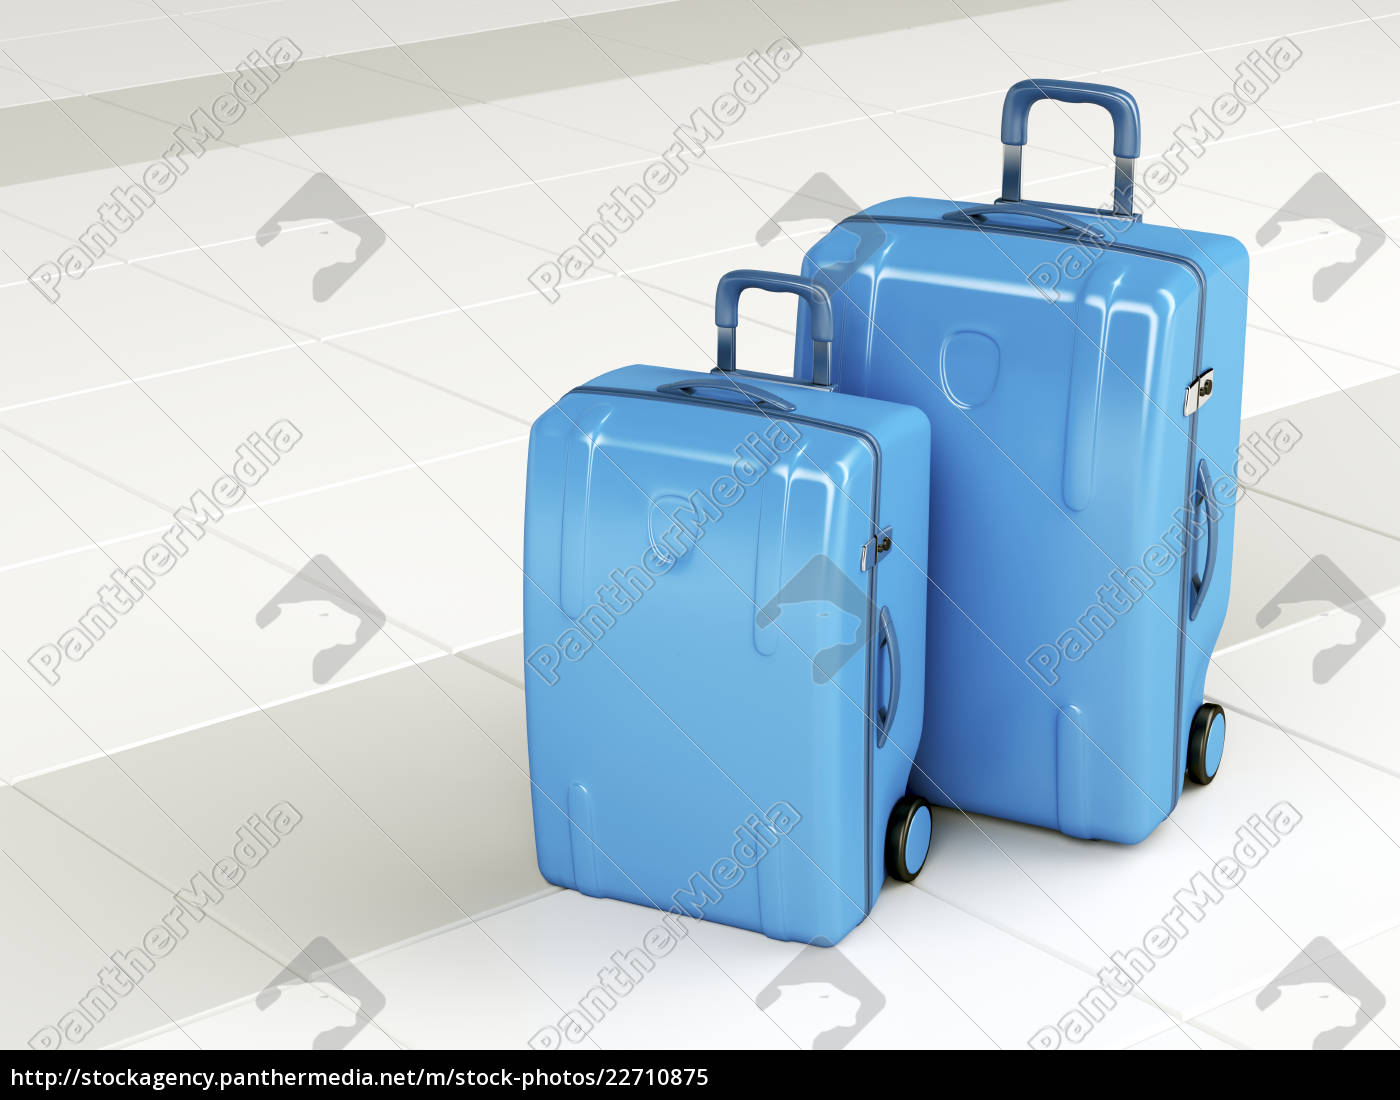 blue, travel, bags - 22710875